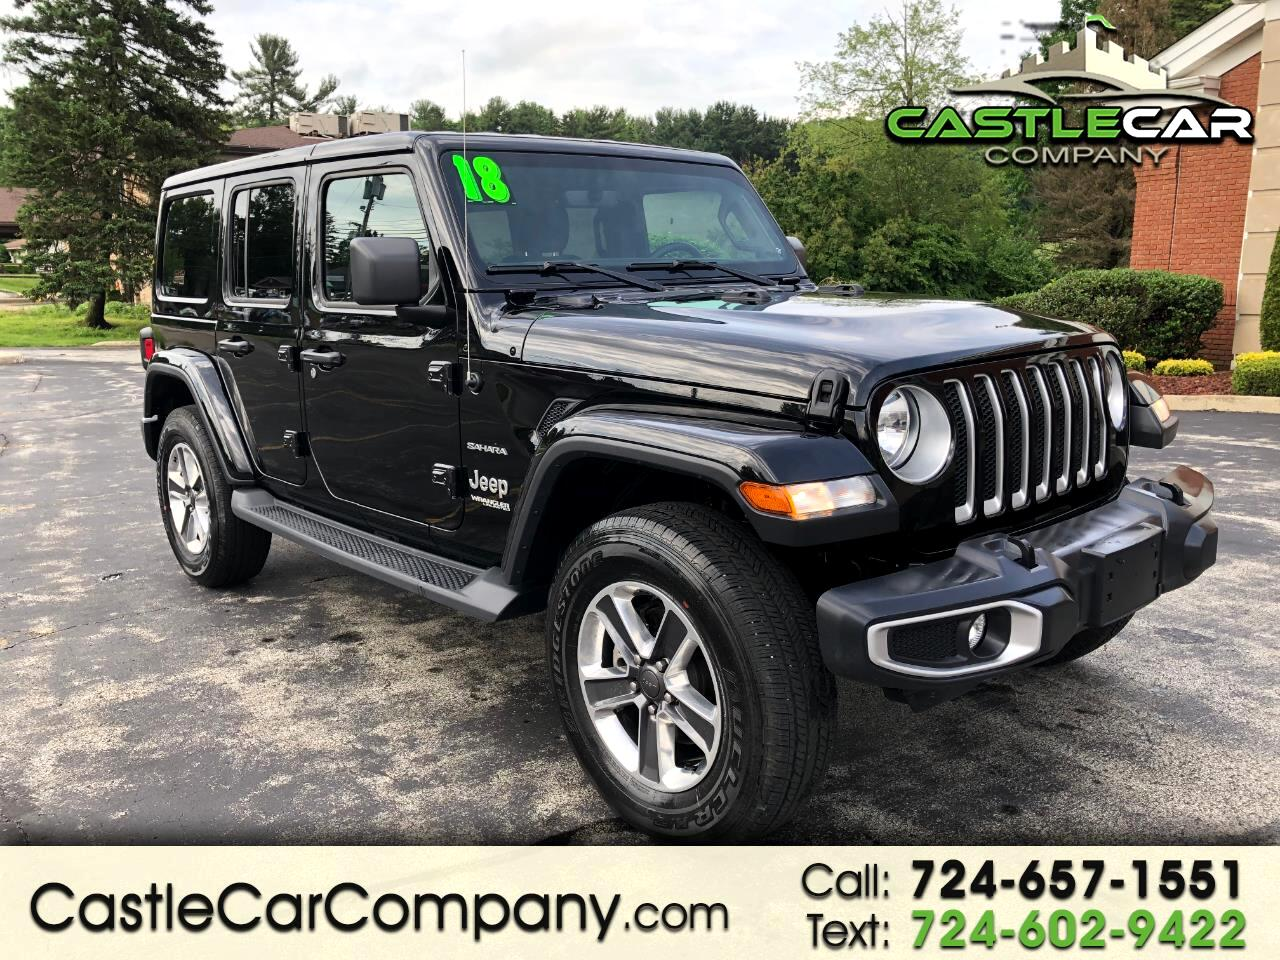 2018 Jeep Wrangler Unlimited JL UNLIMITED SAHARA EDITION